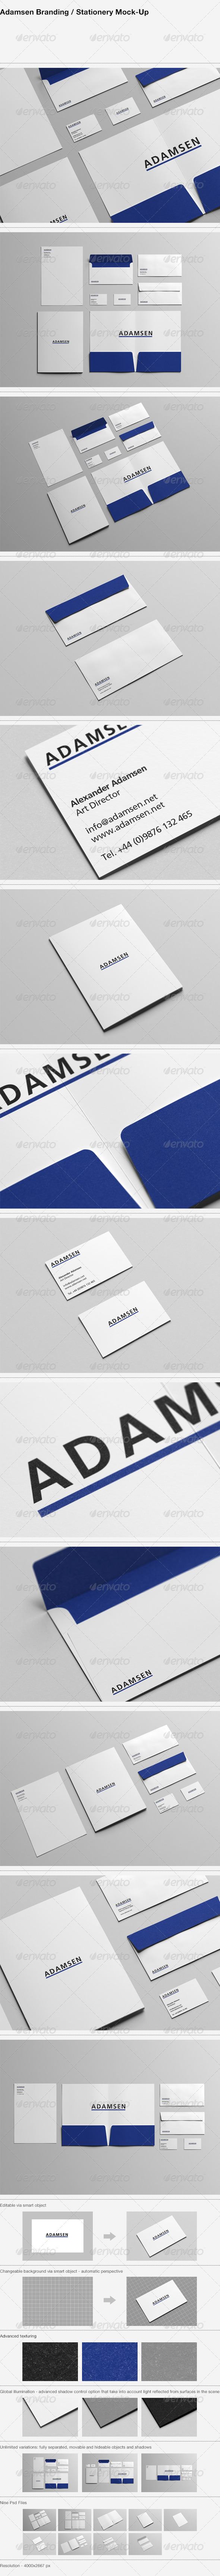 GraphicRiver Adamsen Branding Stationery Mock-Up 6685183